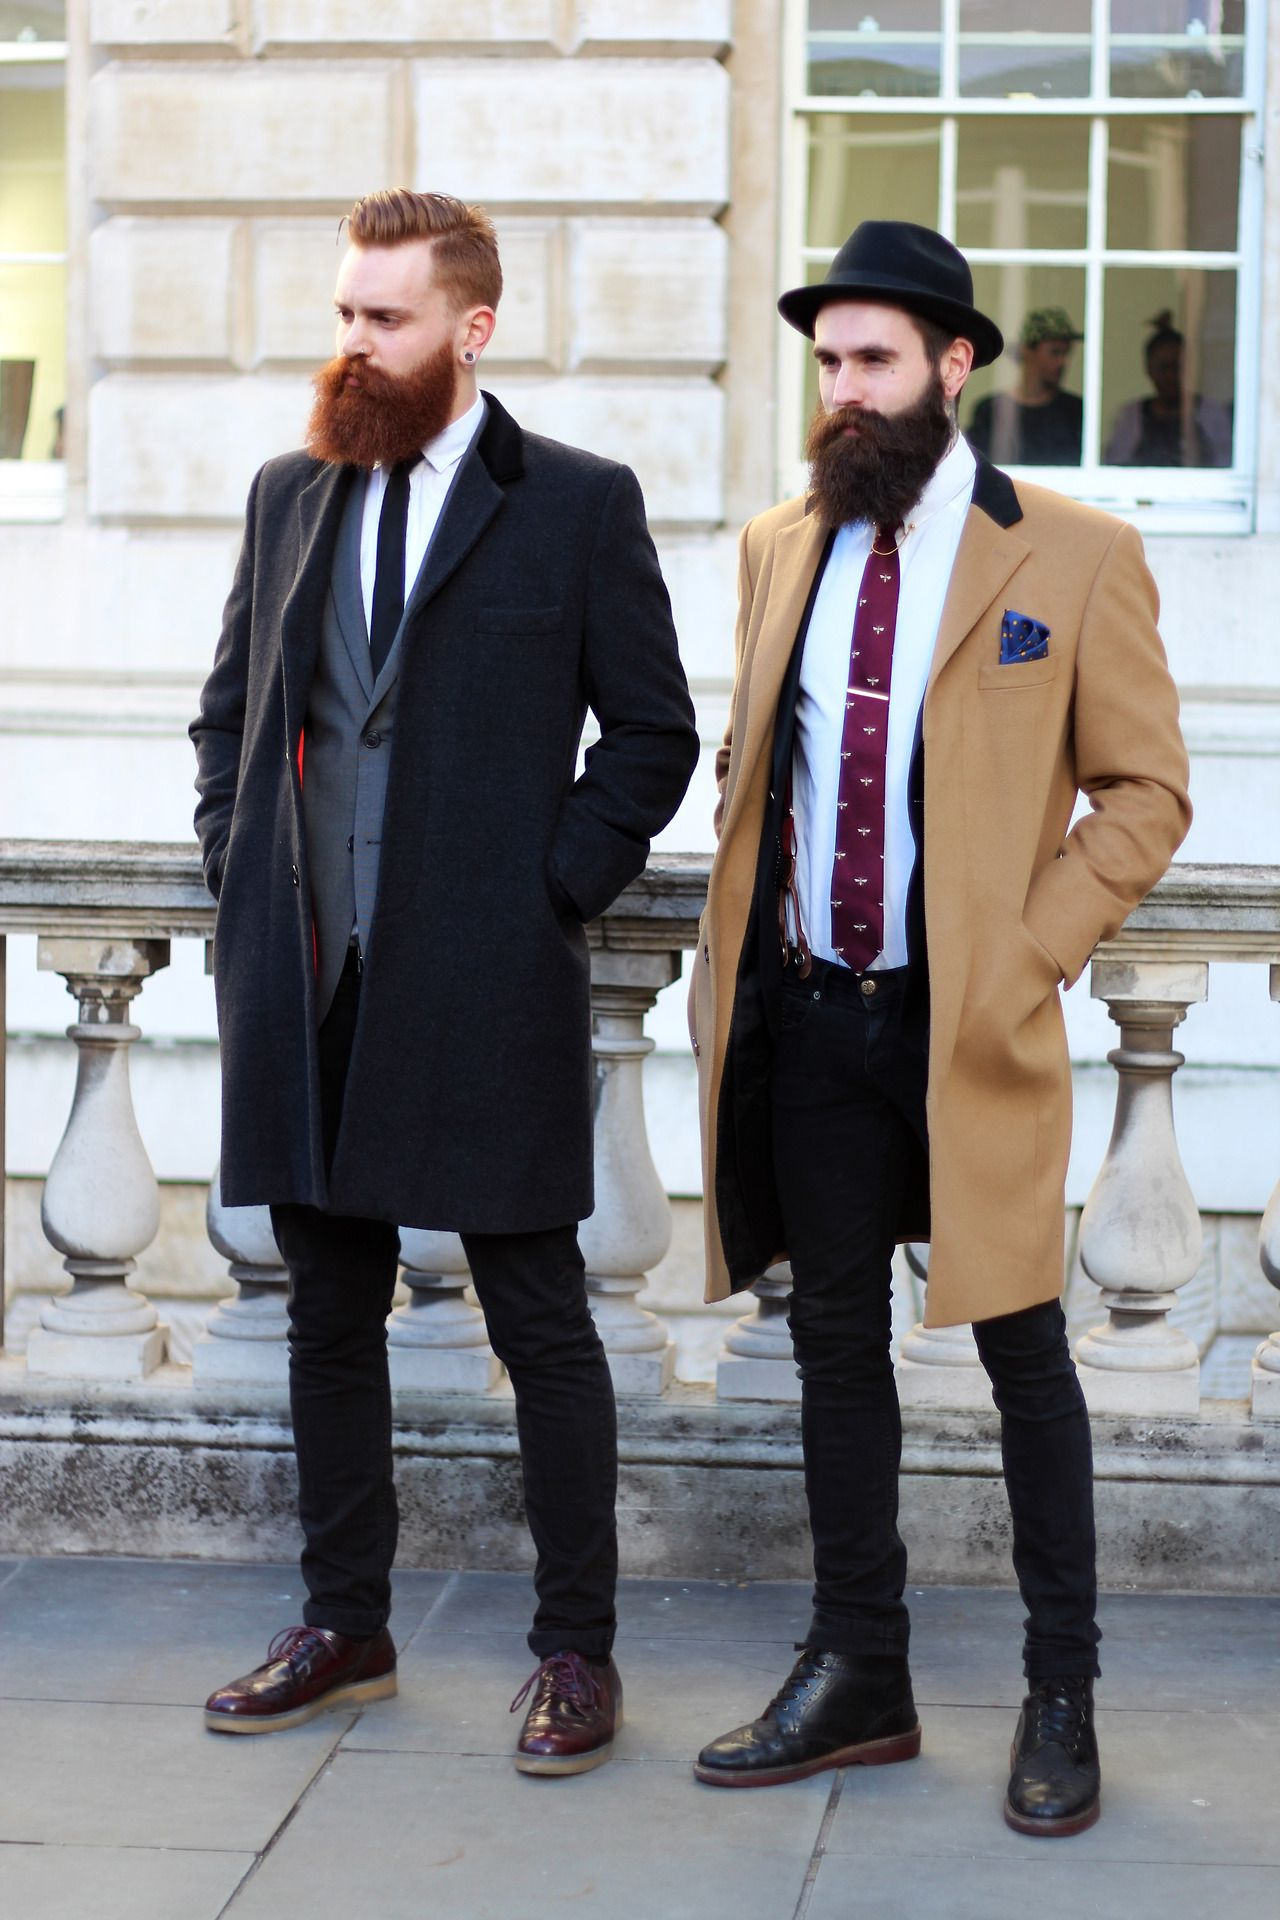 Tie bars are often worn to the full width of the tie now as long as